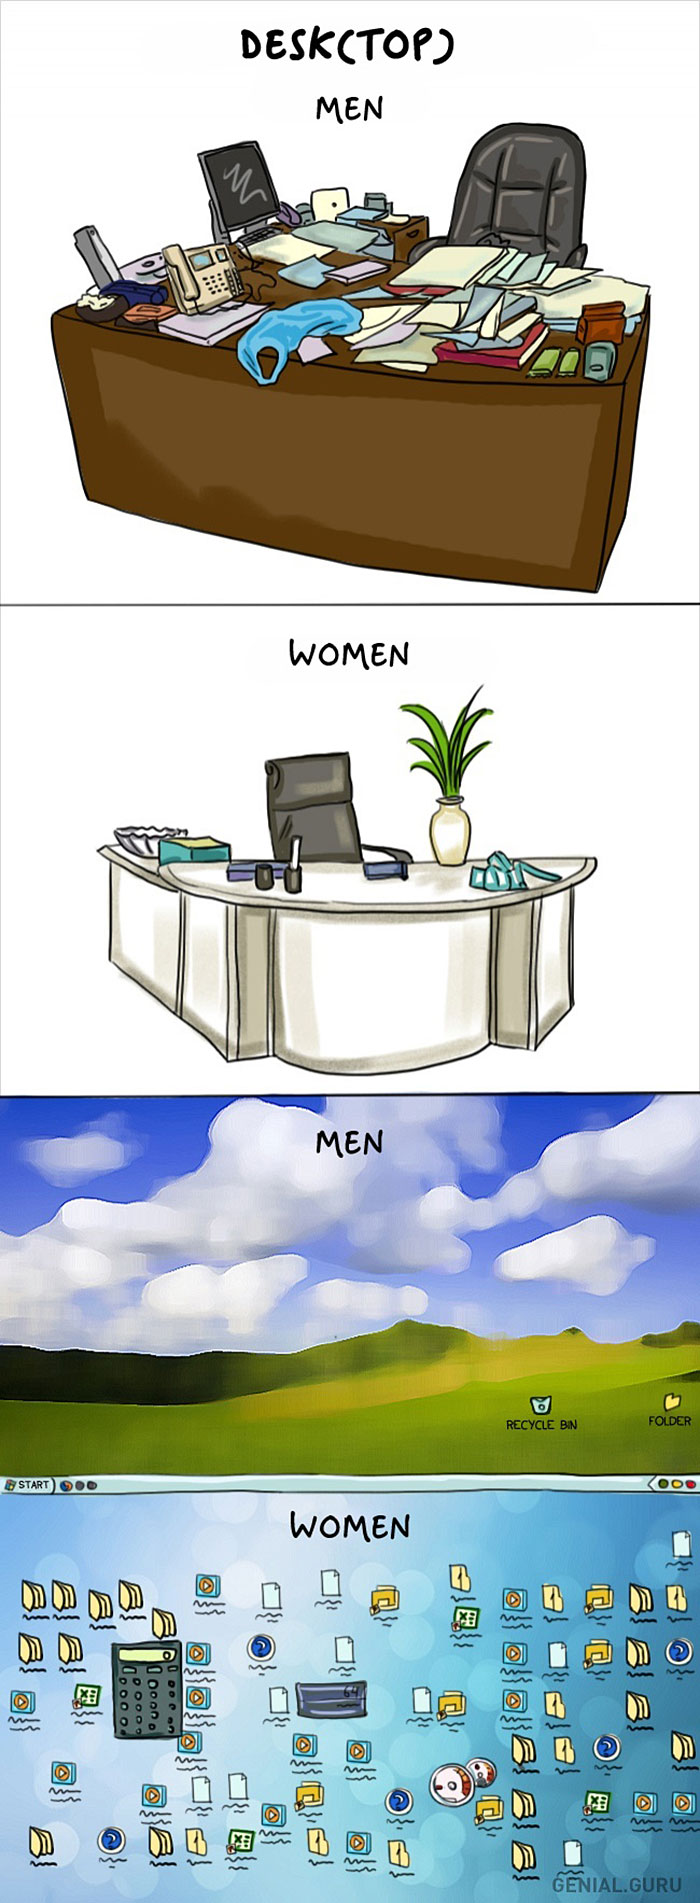 funny-illustrations-men-vs-women-differences-web-comic (13)